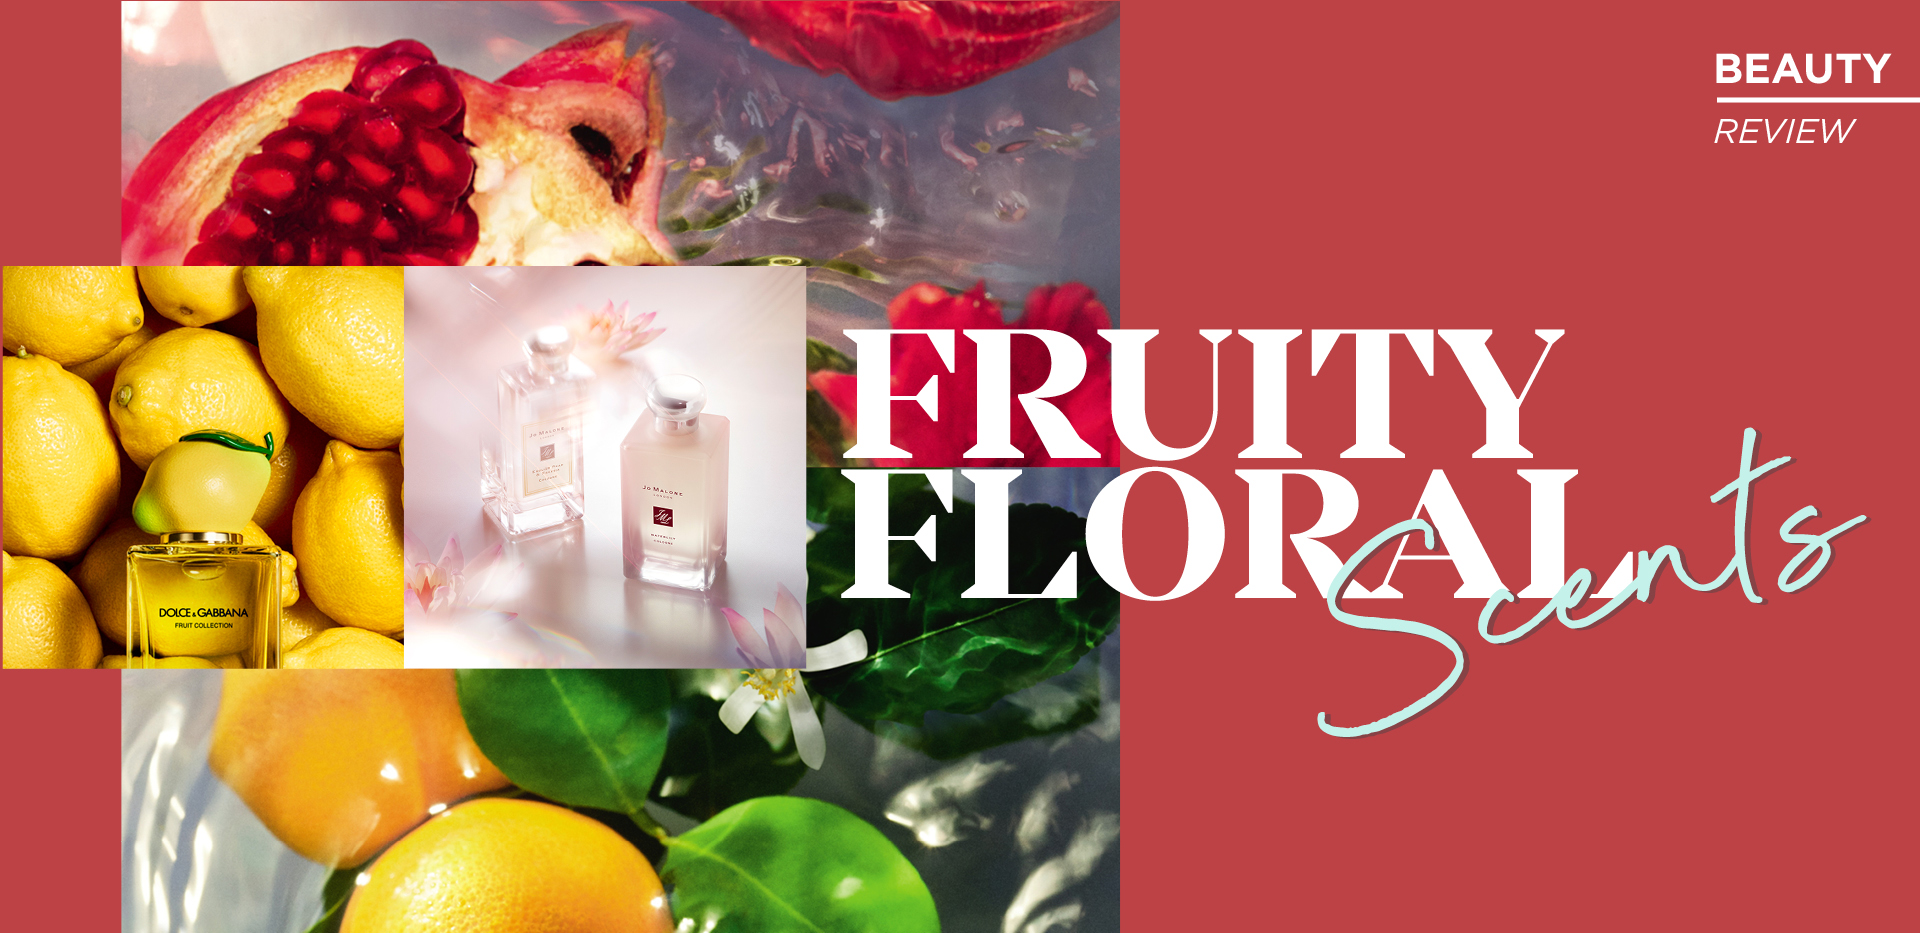 FRUITY FLORAL SCENTS